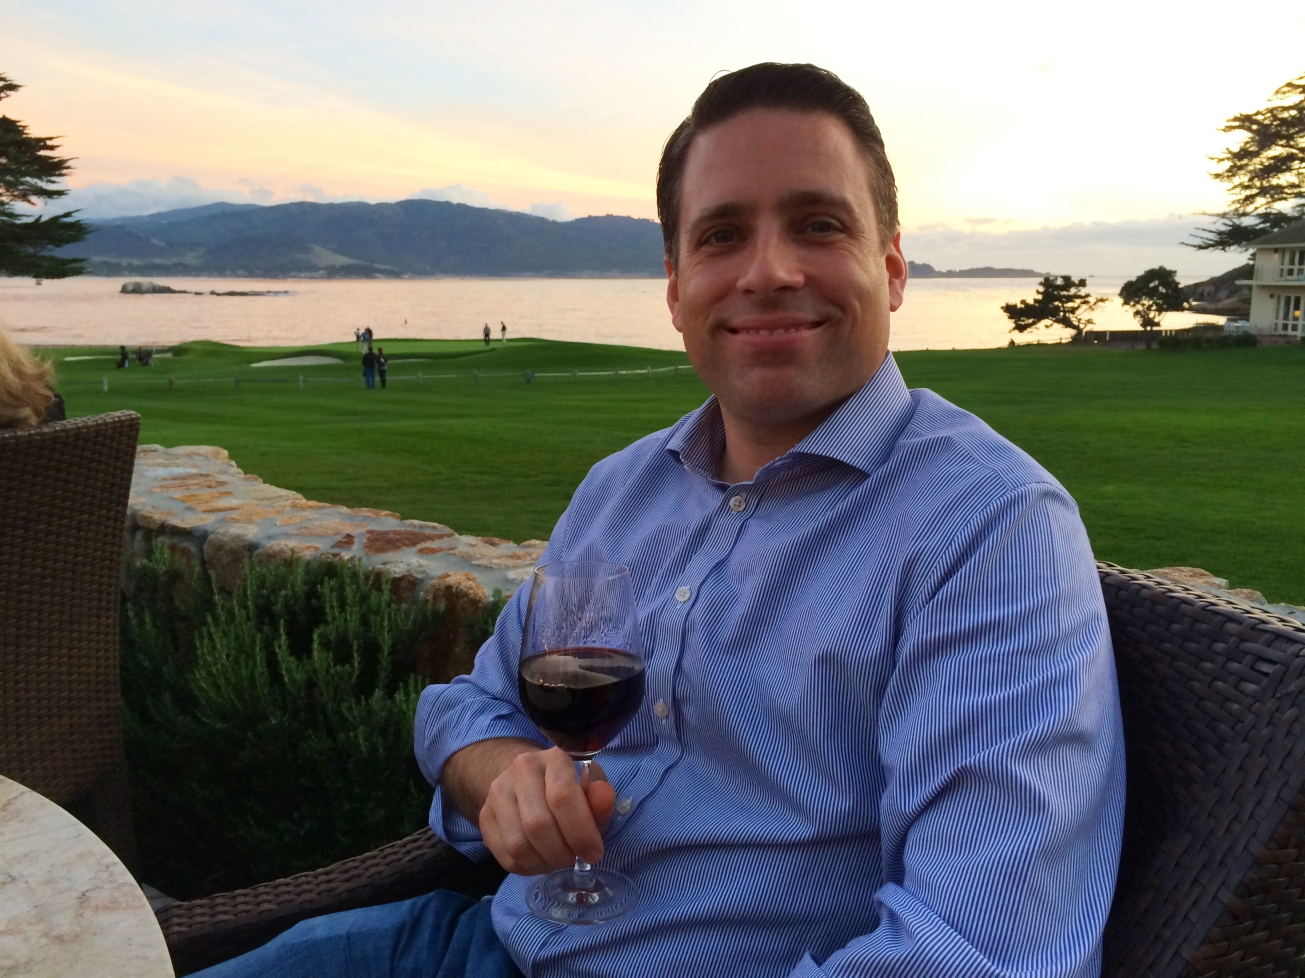 Pelz on Wine at Pebble Beach